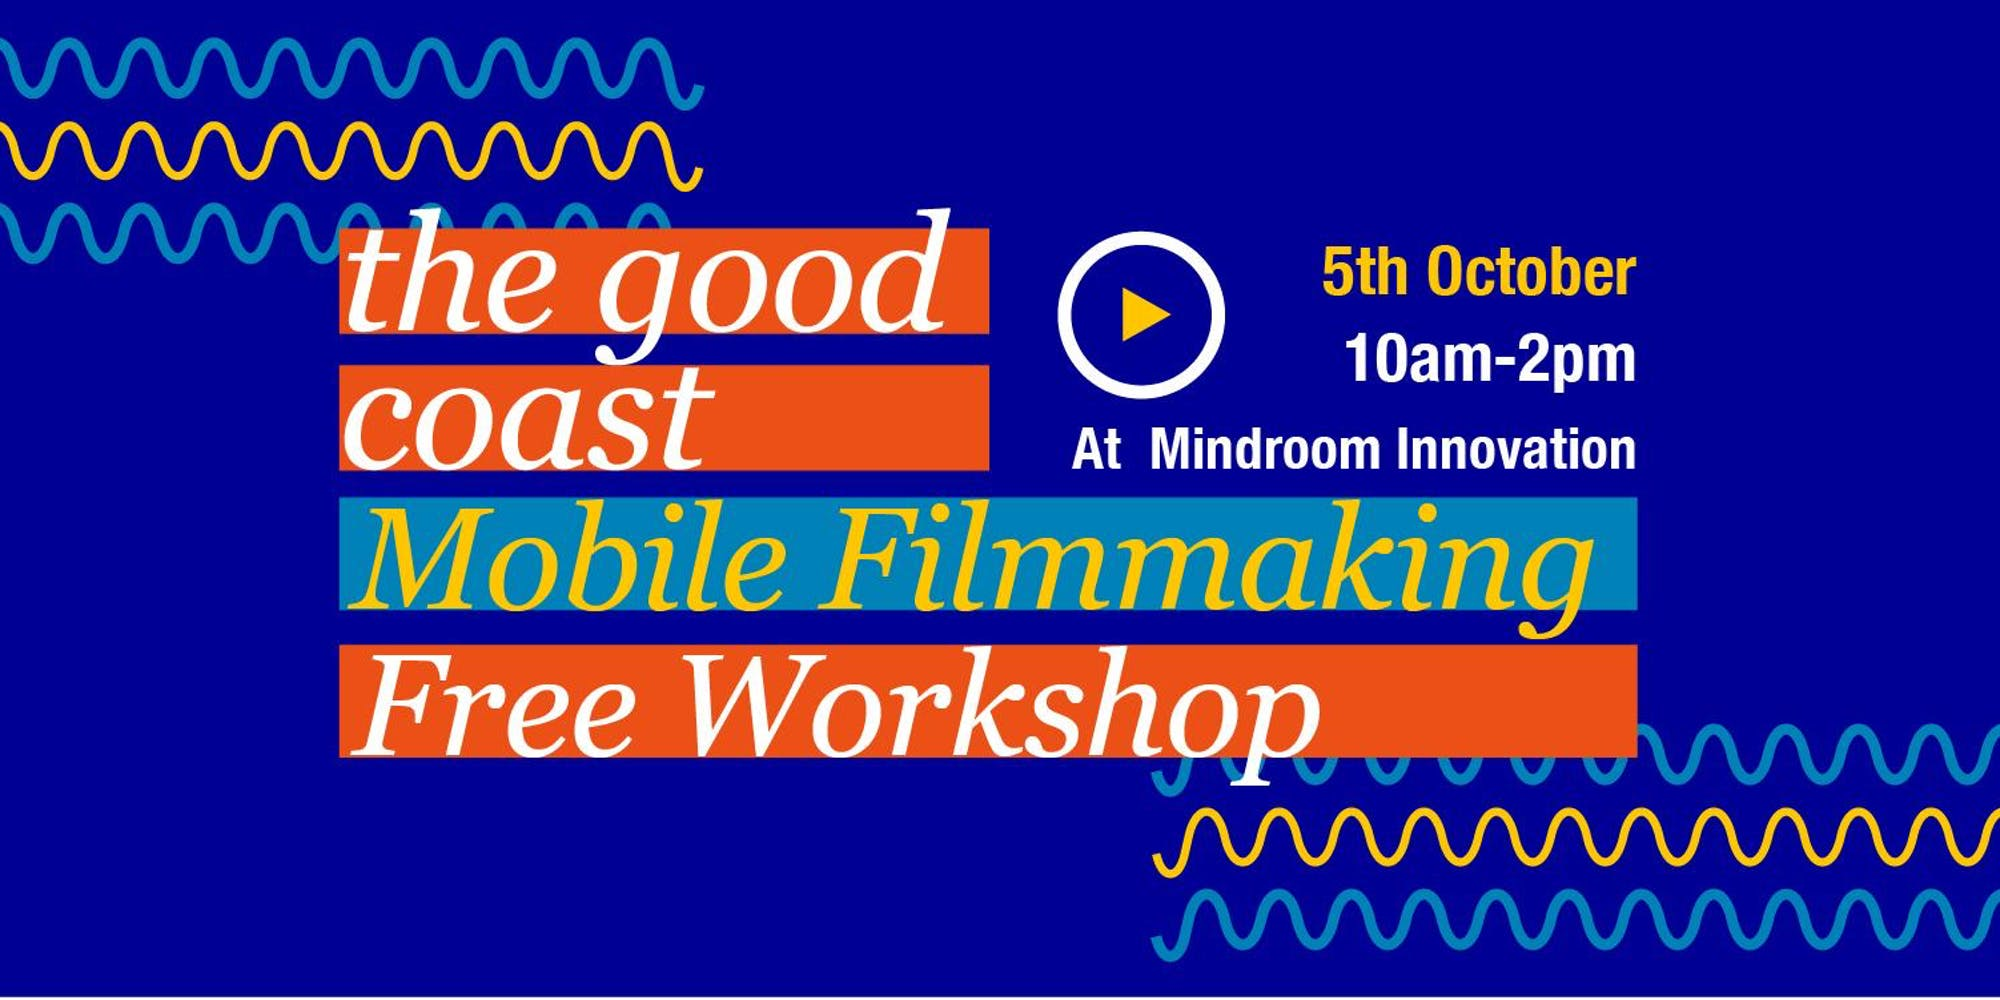 Mobile Filmmaking Workshop